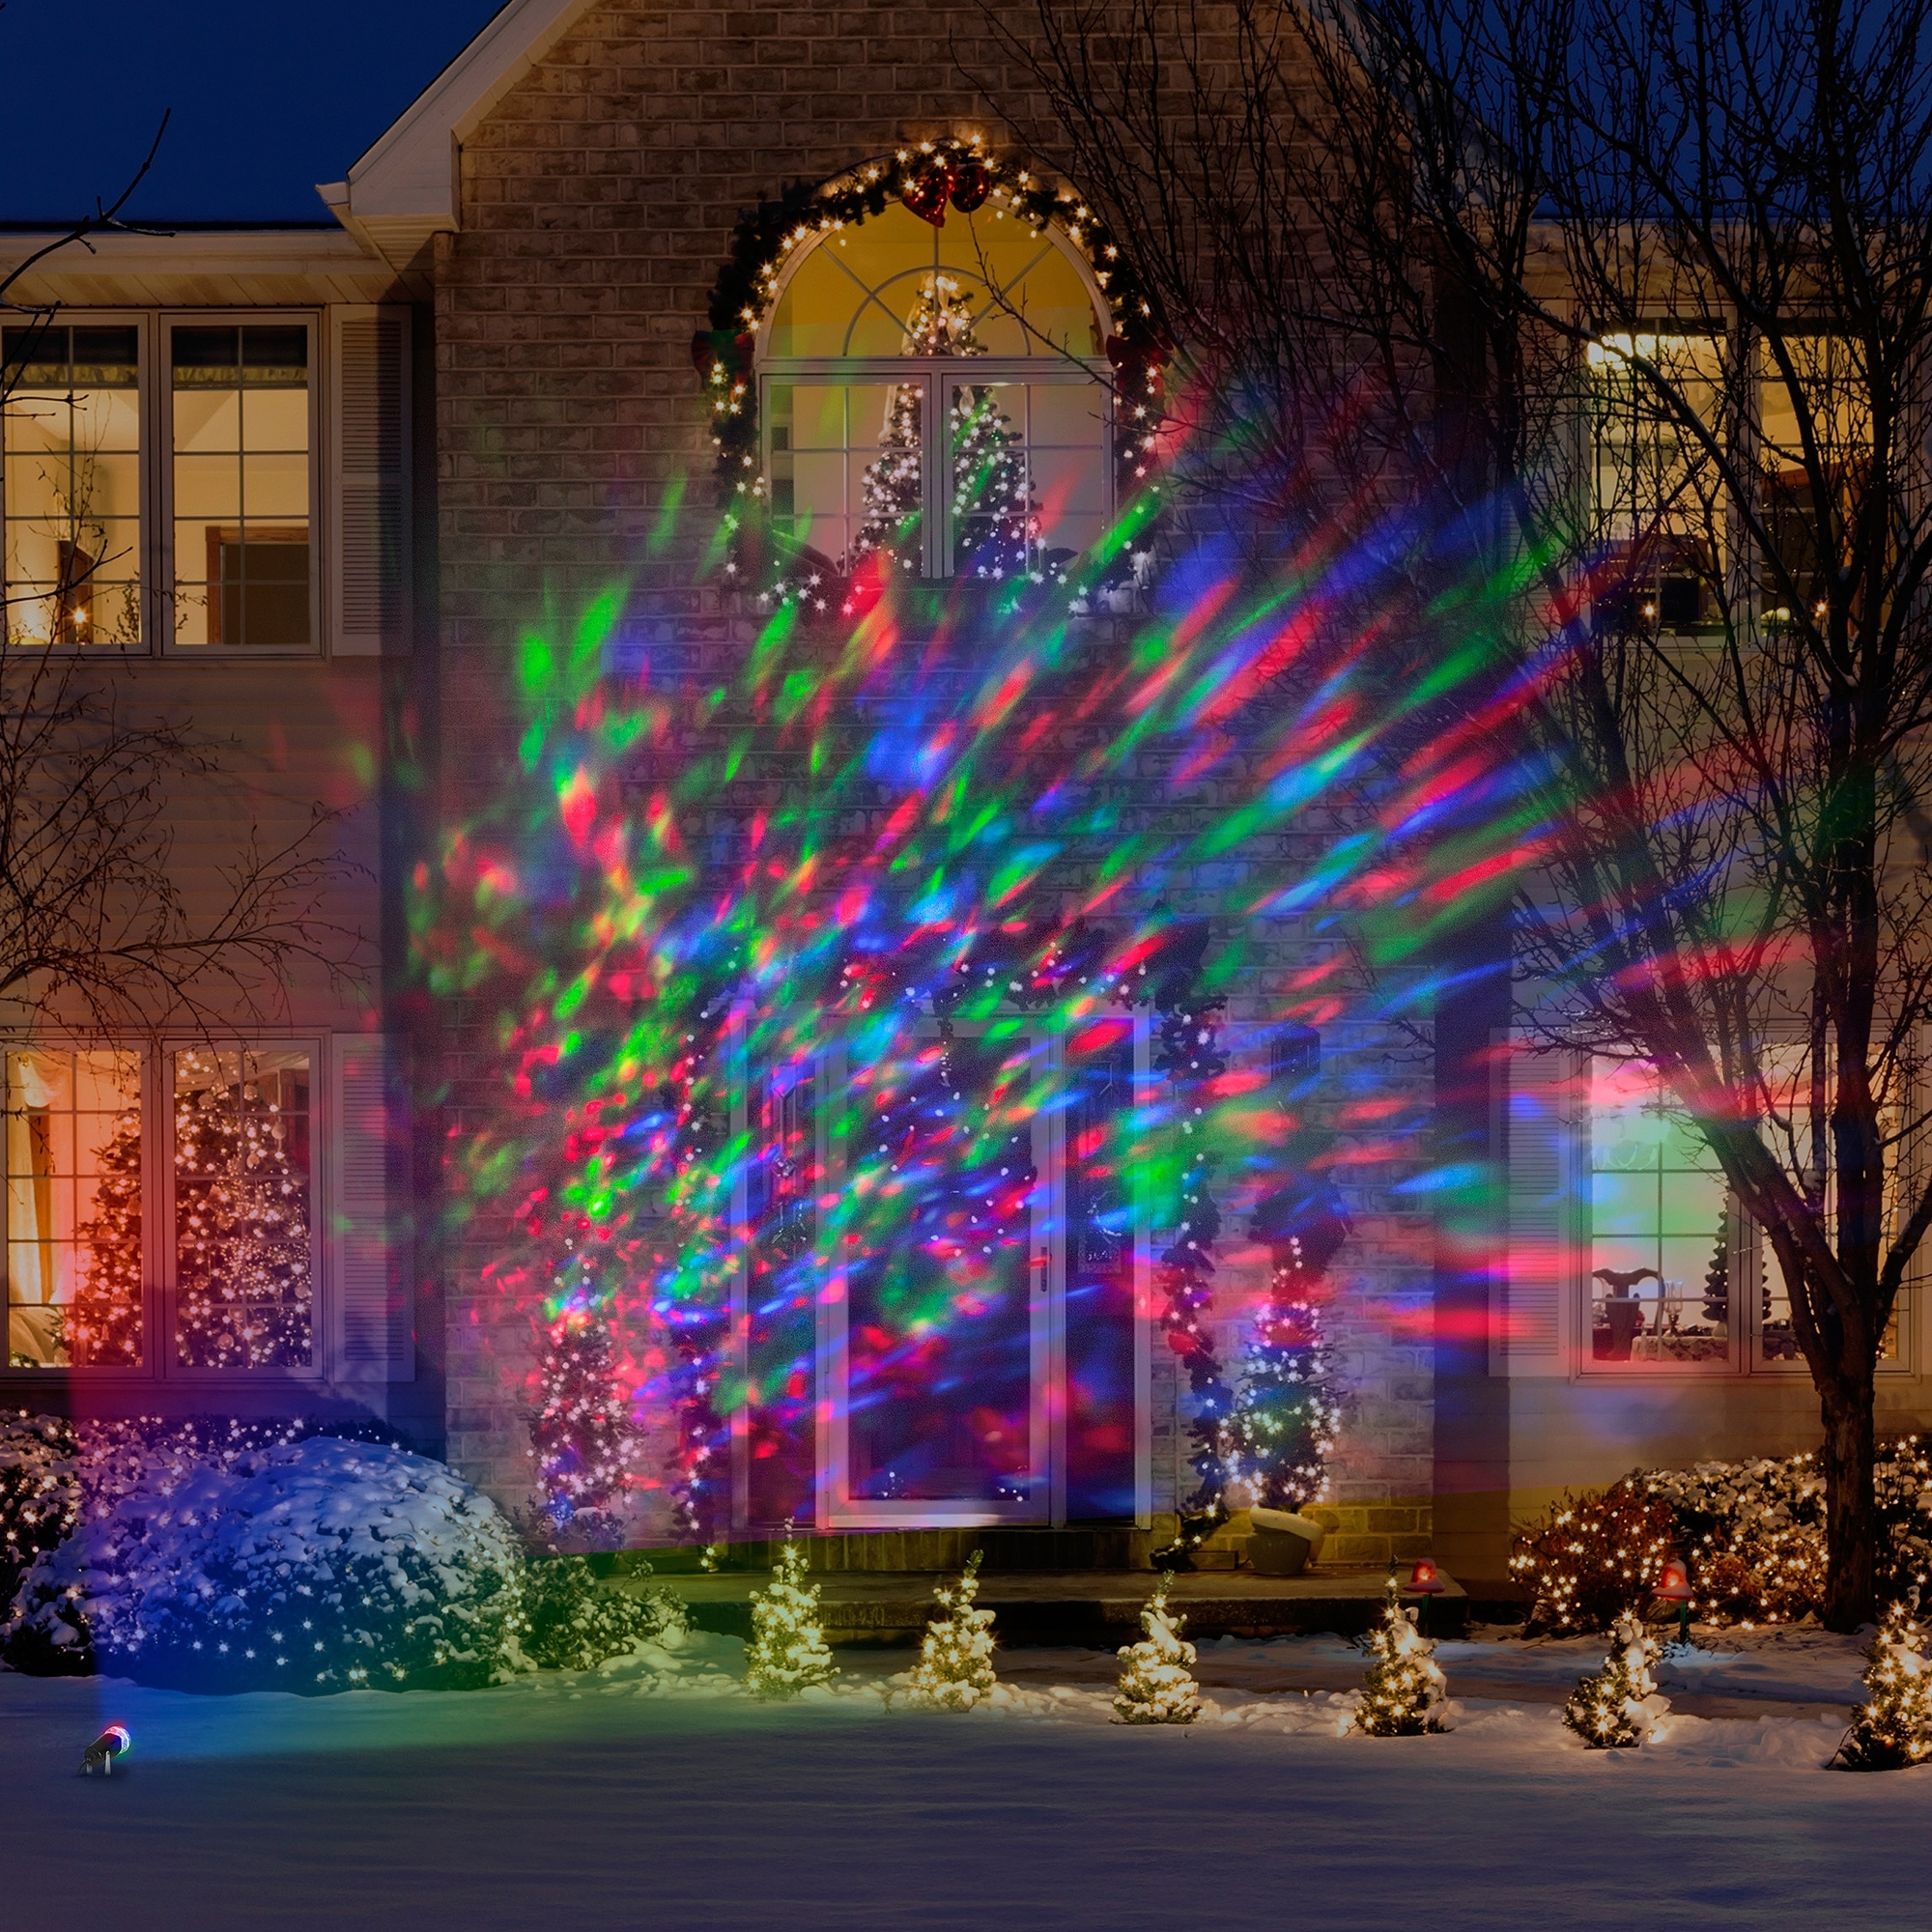 Lightshow Kaleidoscope Multi Colored Christmas Lights – Walmart In Most Up To Date Outdoor Wall Lighting At Walmart (Gallery 4 of 20)